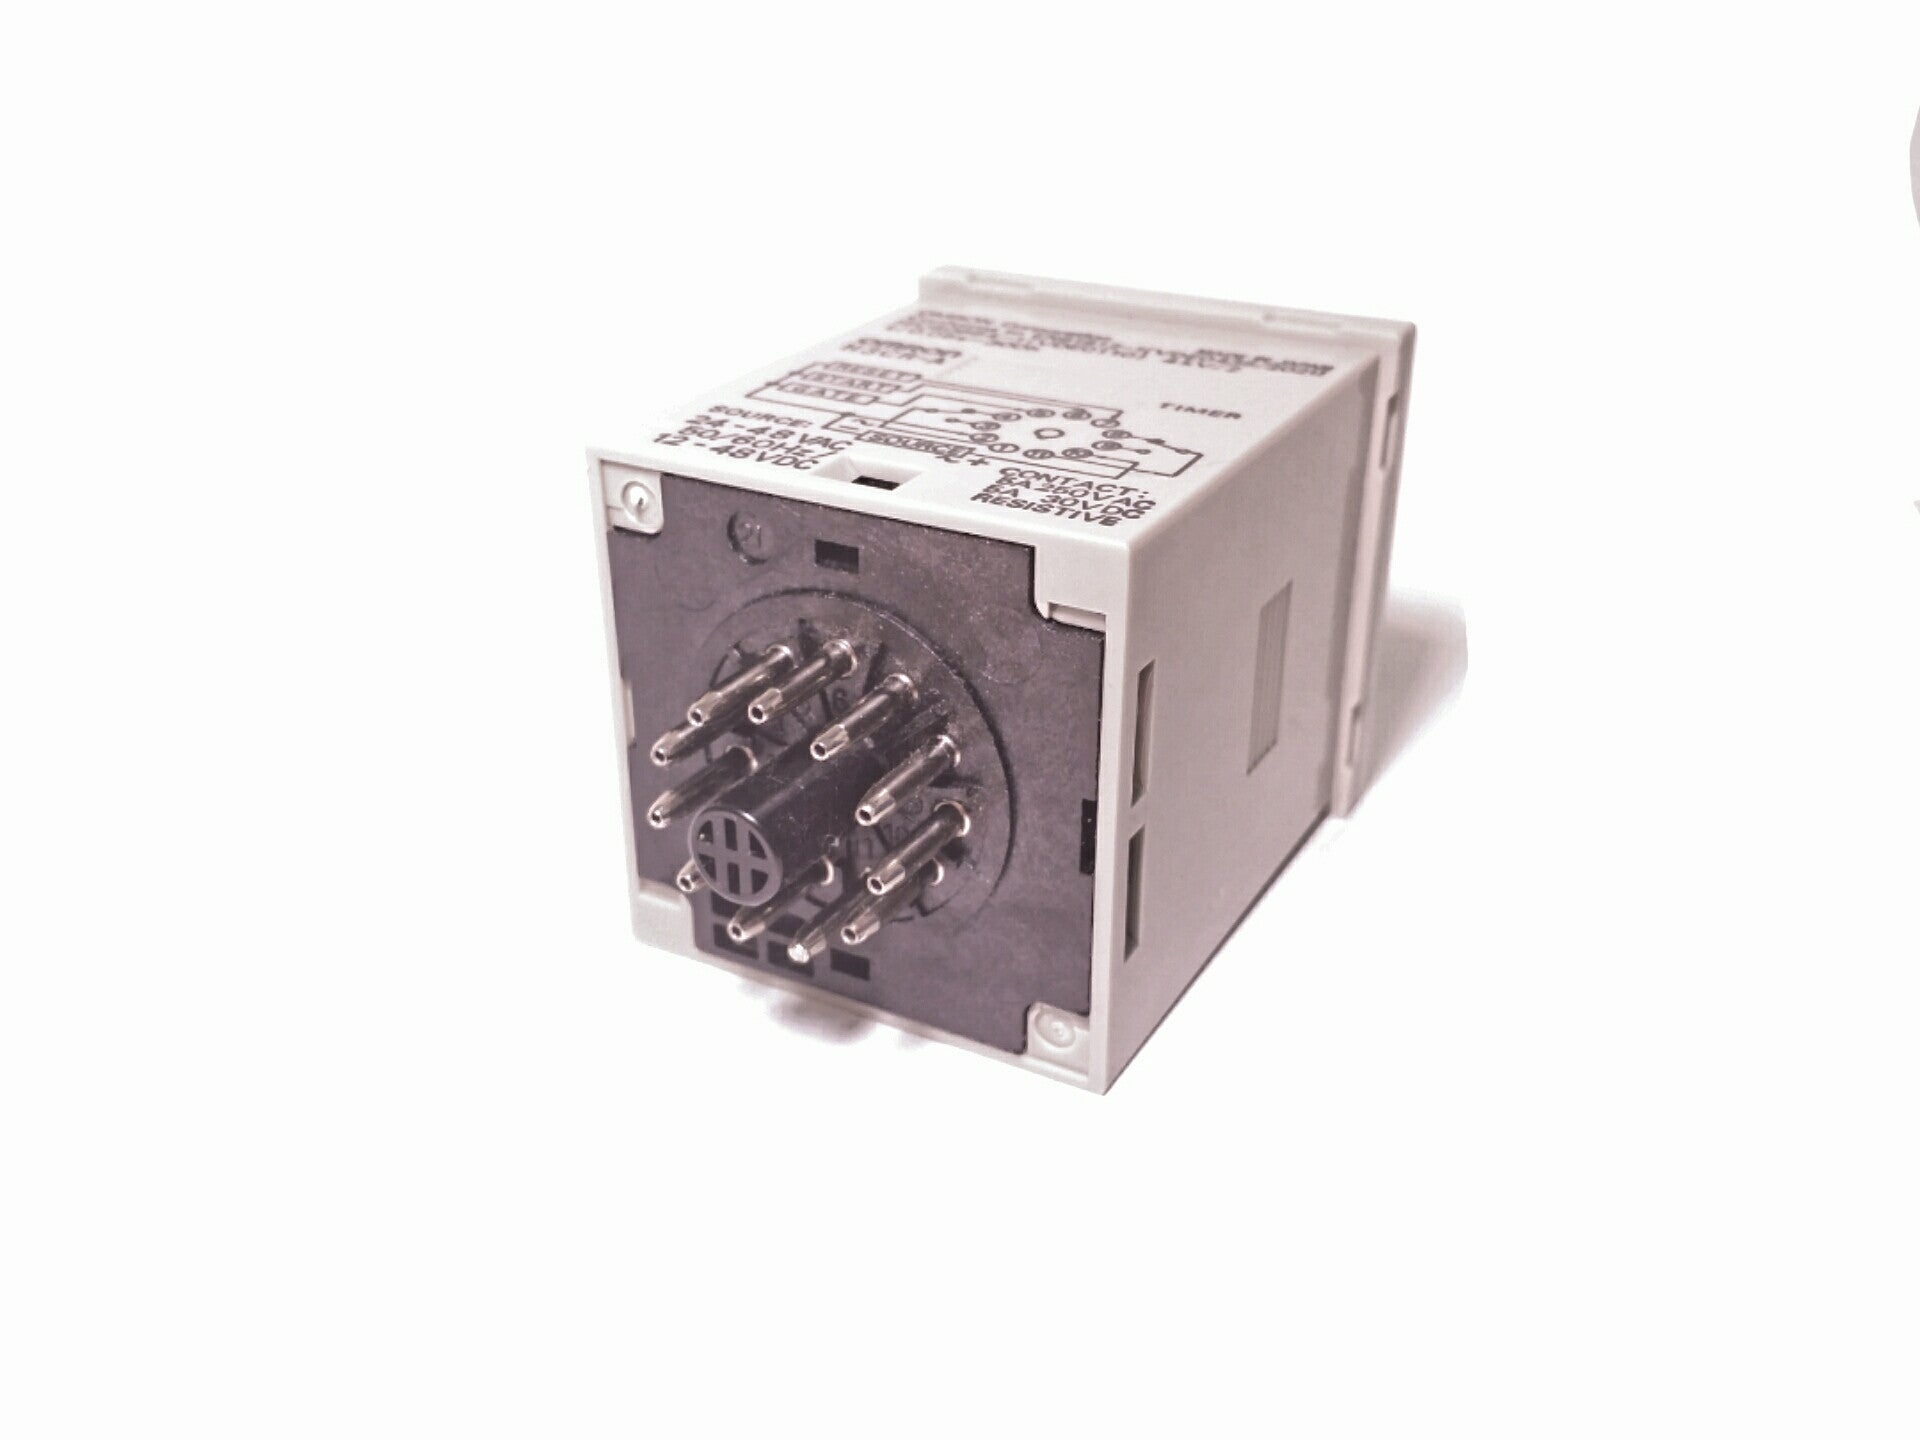 12 Volt Double Pole Throw Timer Relay Firgelli Automations 24 To